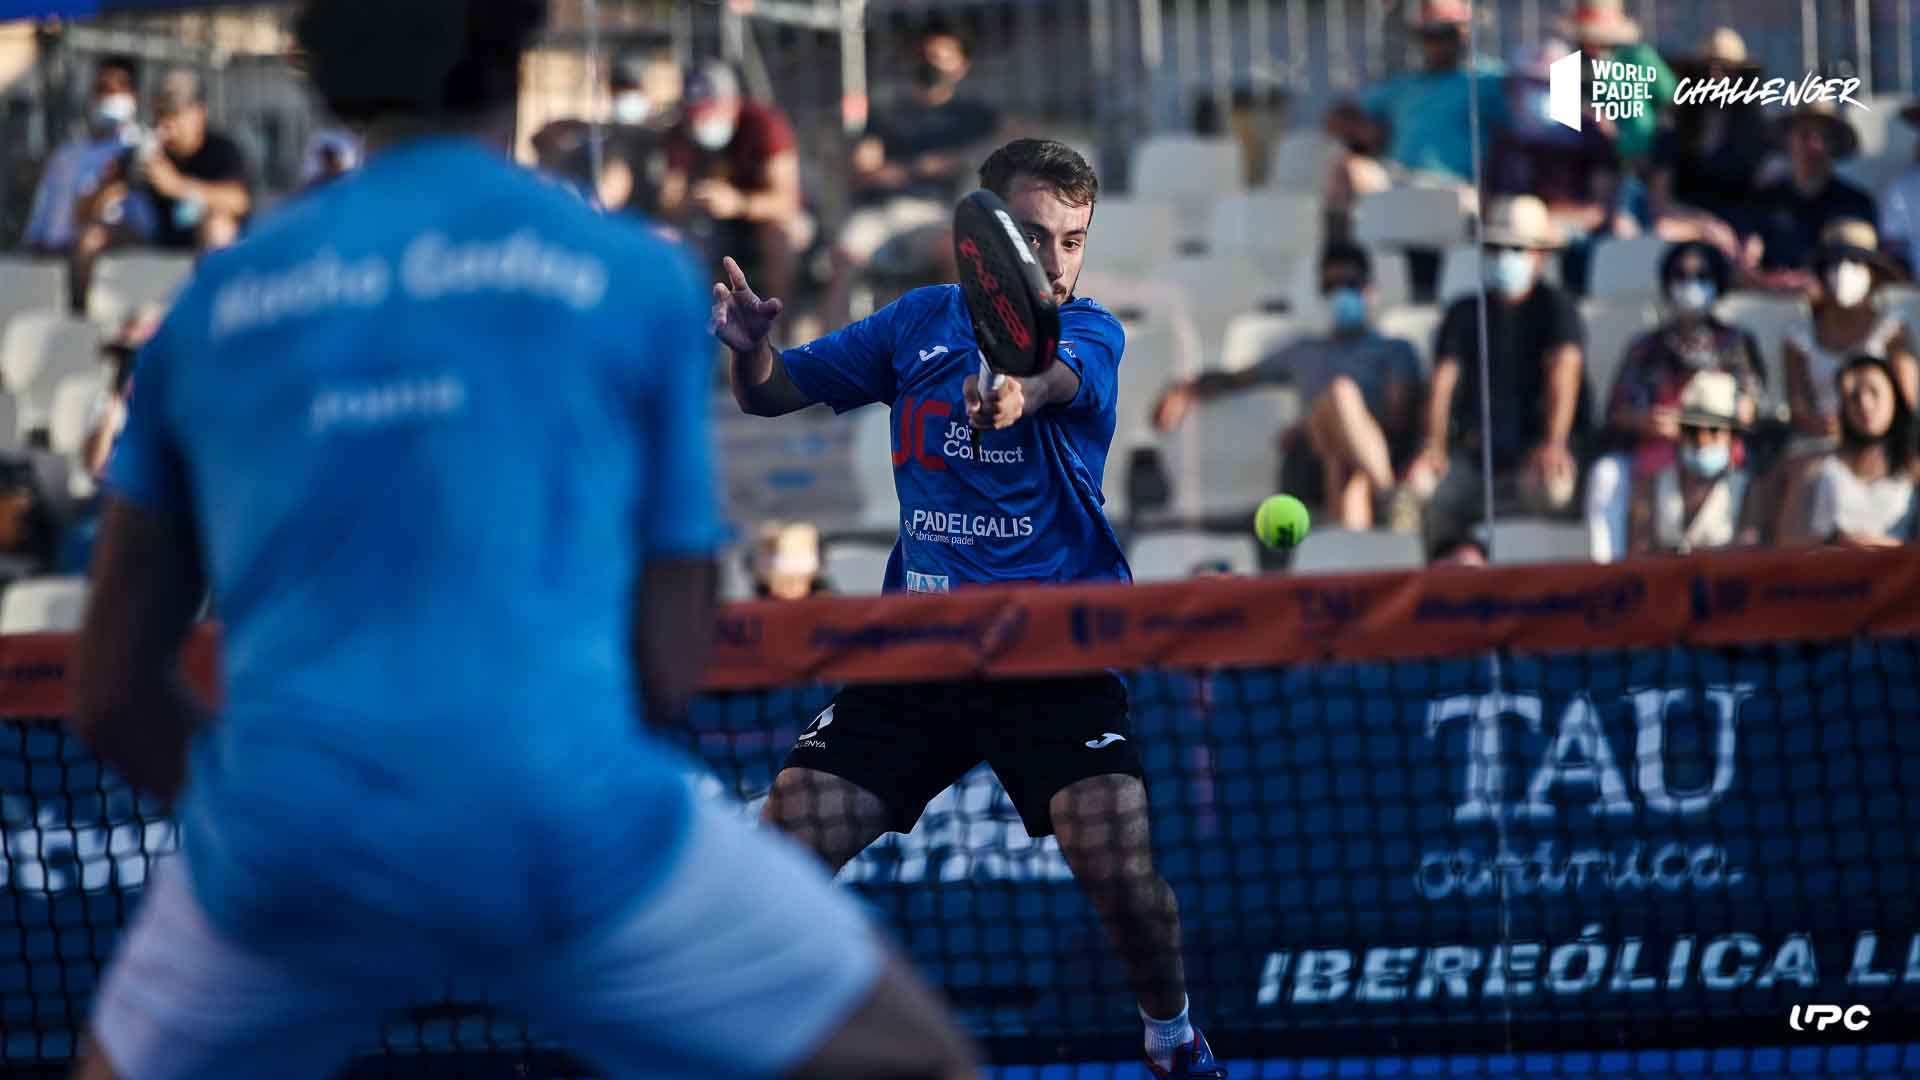 JAVIER_RICO_8os_final_masculinos_ibereolica_challenger_taucerámica